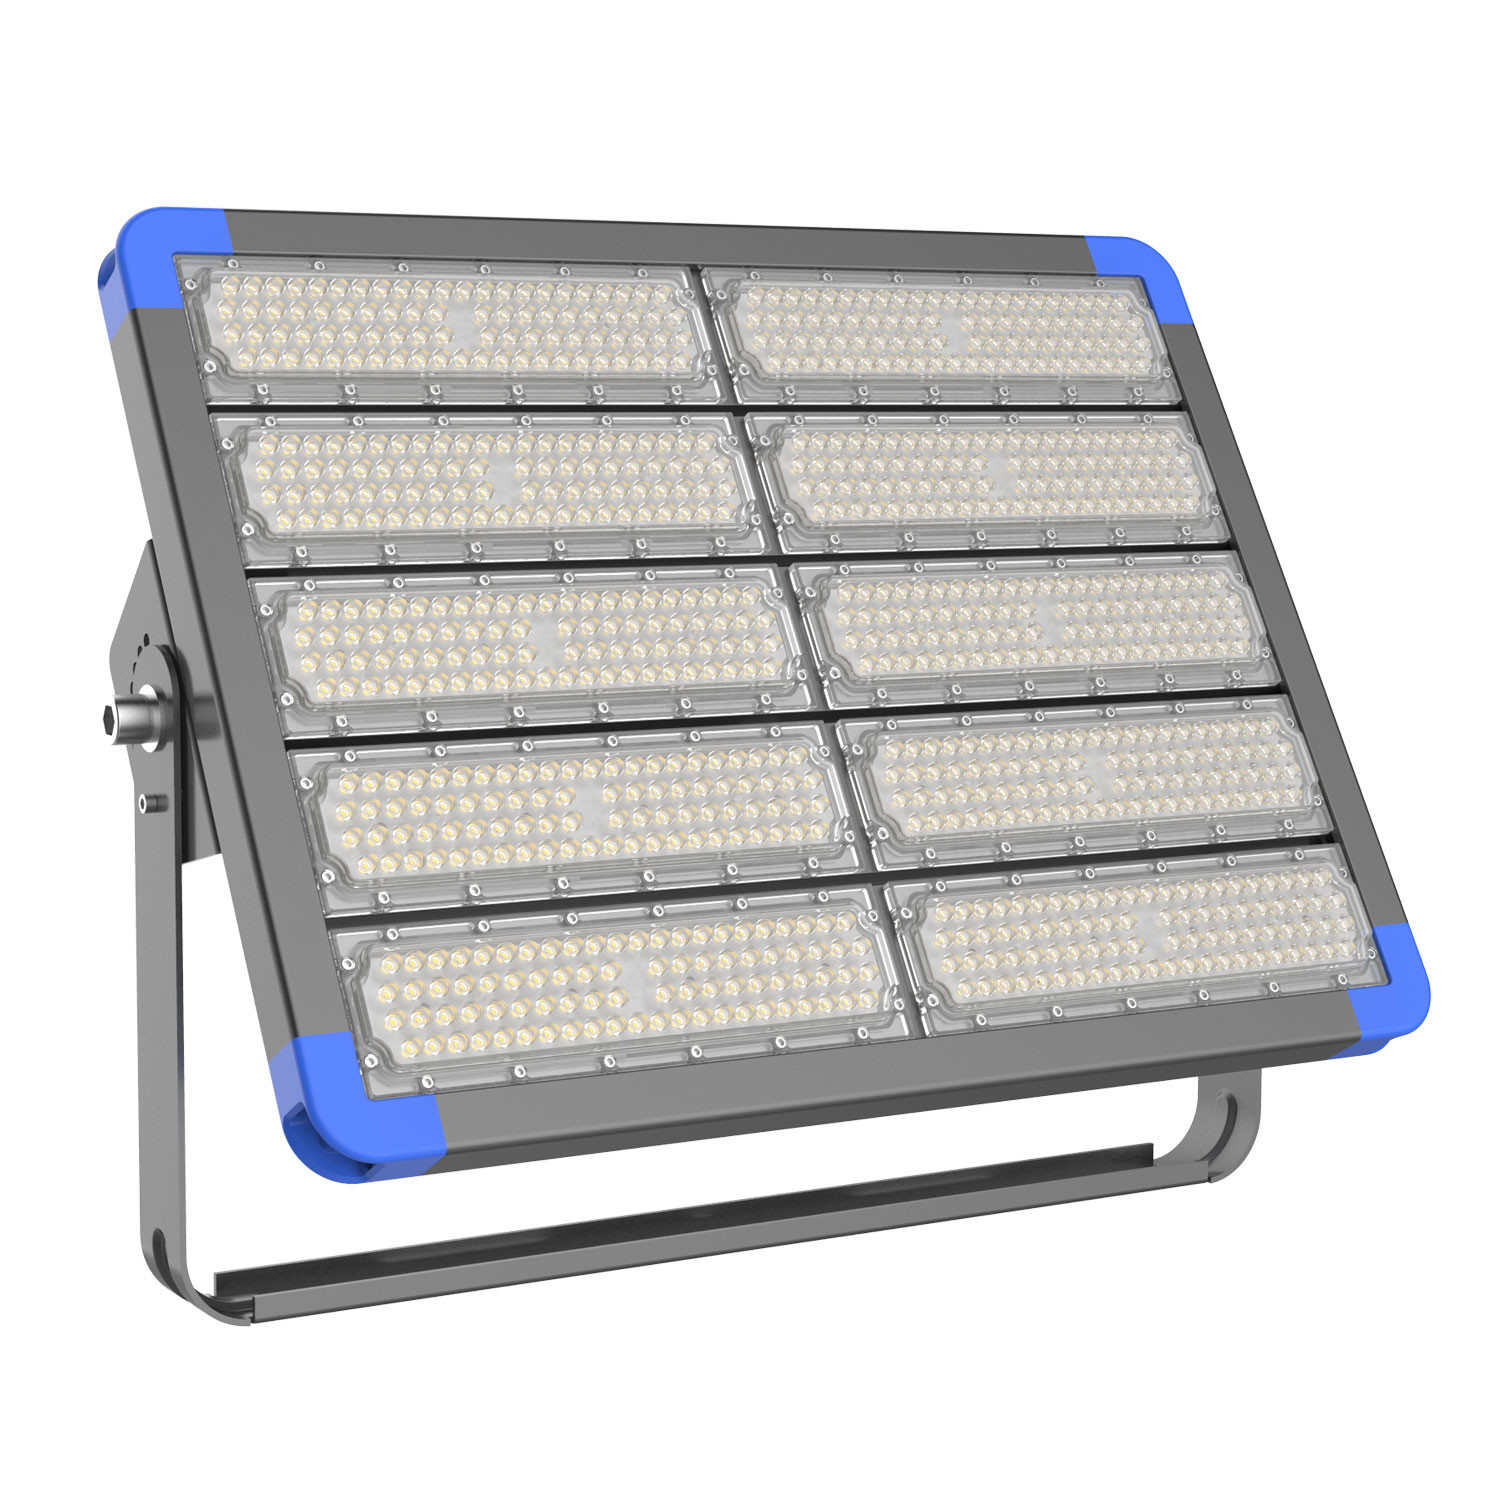 500W IP66 Outdoor LED Tunnel Lighting Mean Well LED Driver